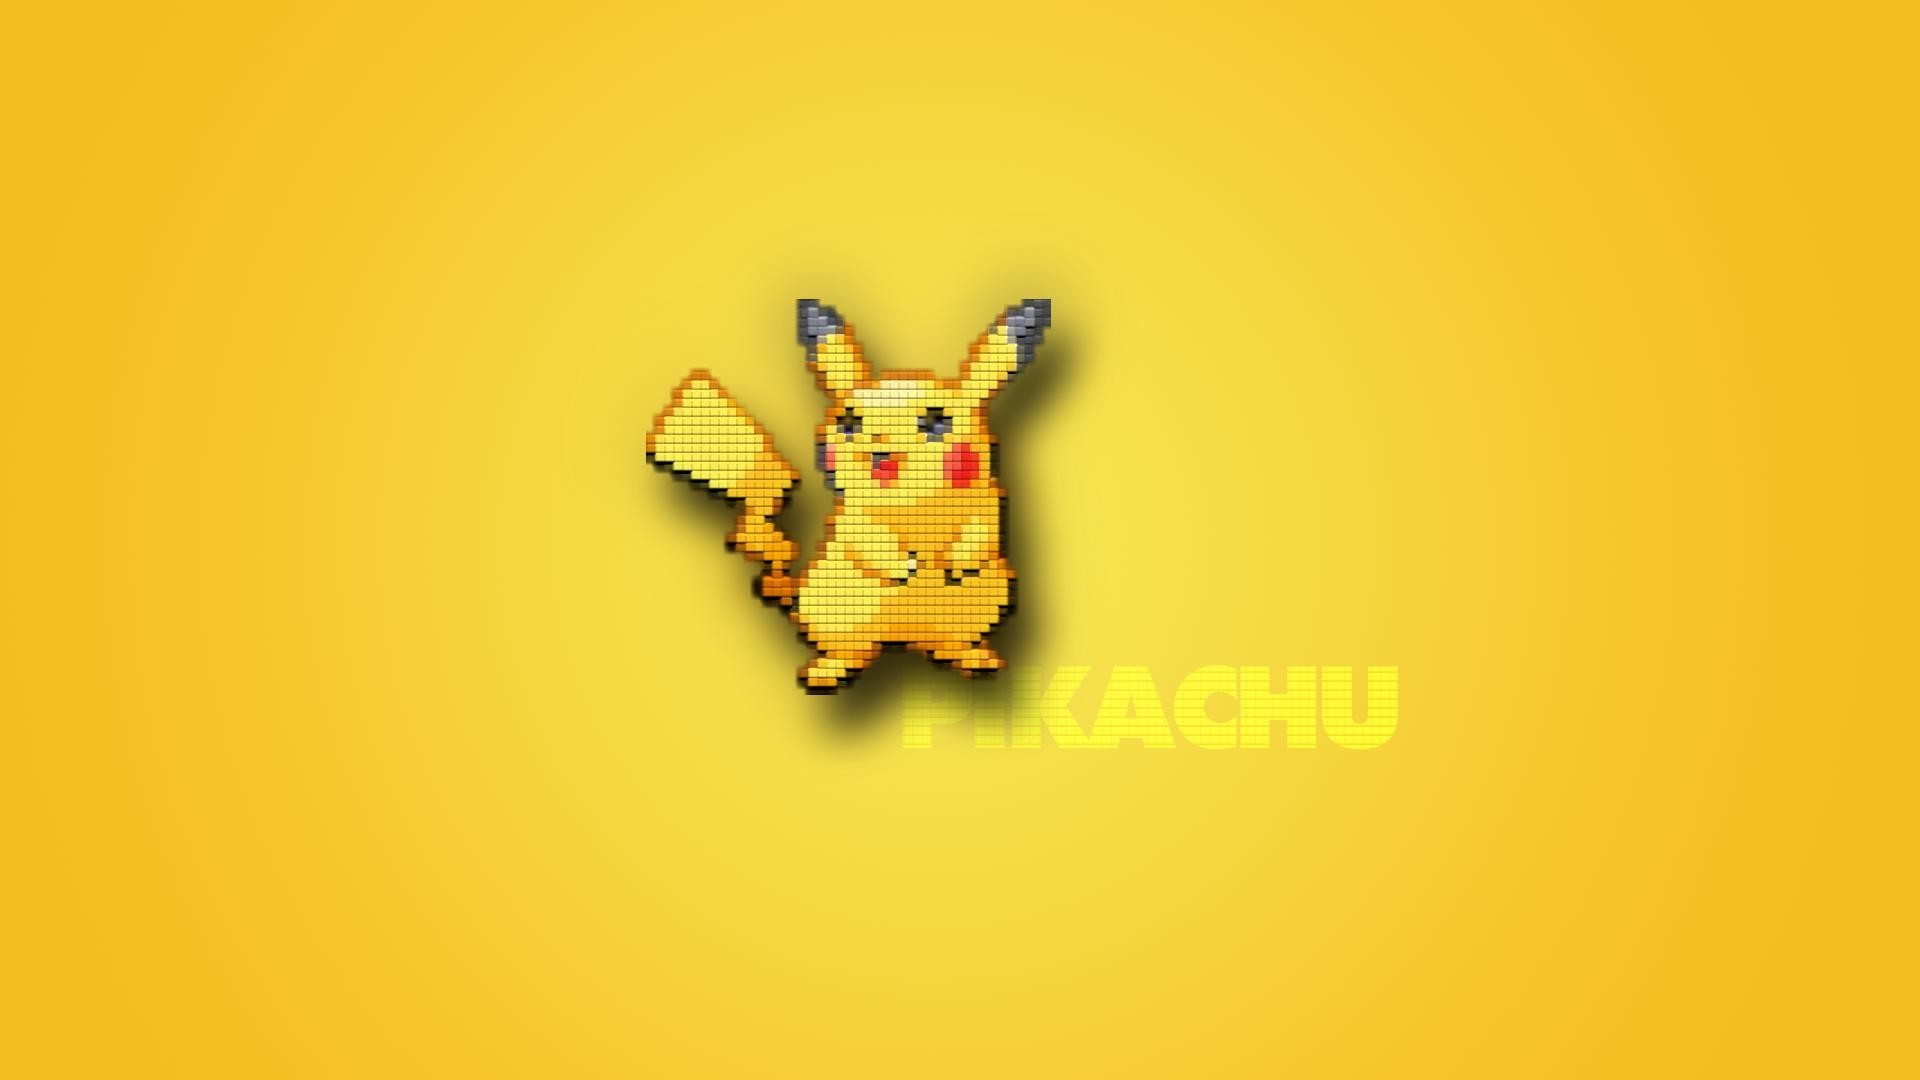 Pikachu wallpaper made by me.